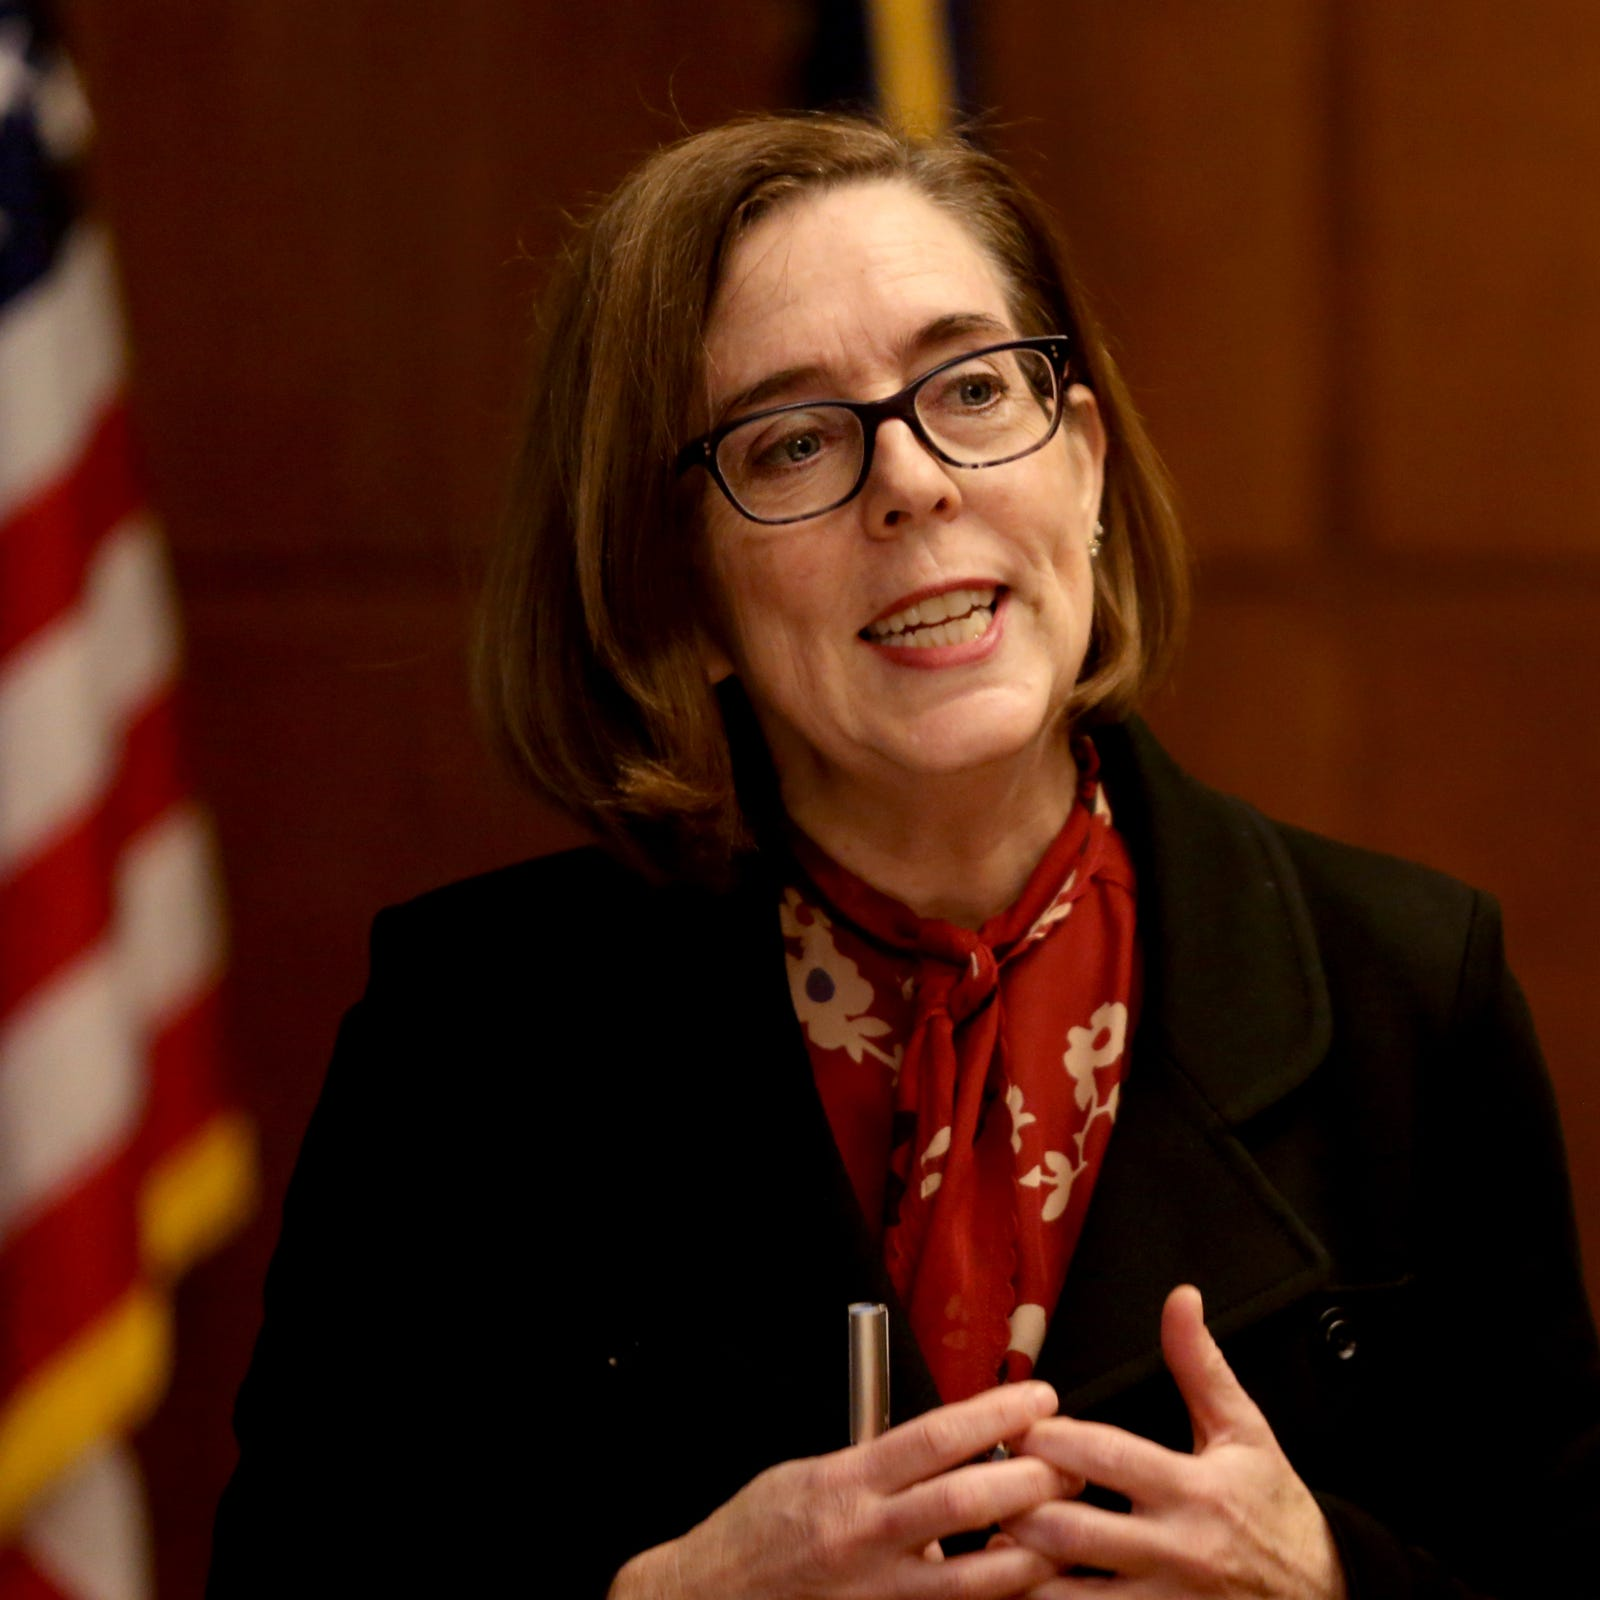 Ethics commission dismisses complaint filed against Gov. Kate Brown